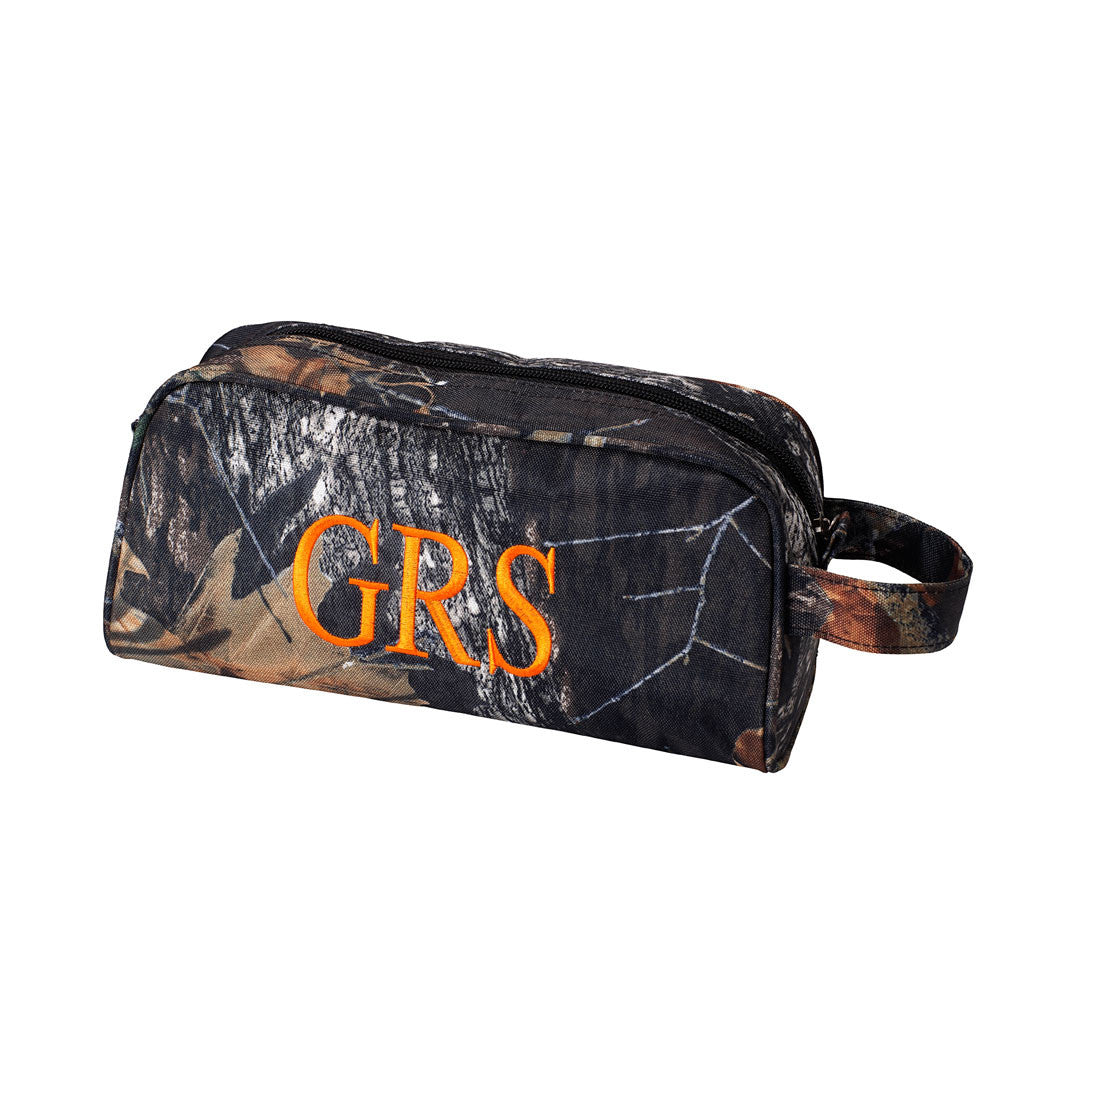 Woods Camo Toiletry Bag - Ciao Bella Boutique